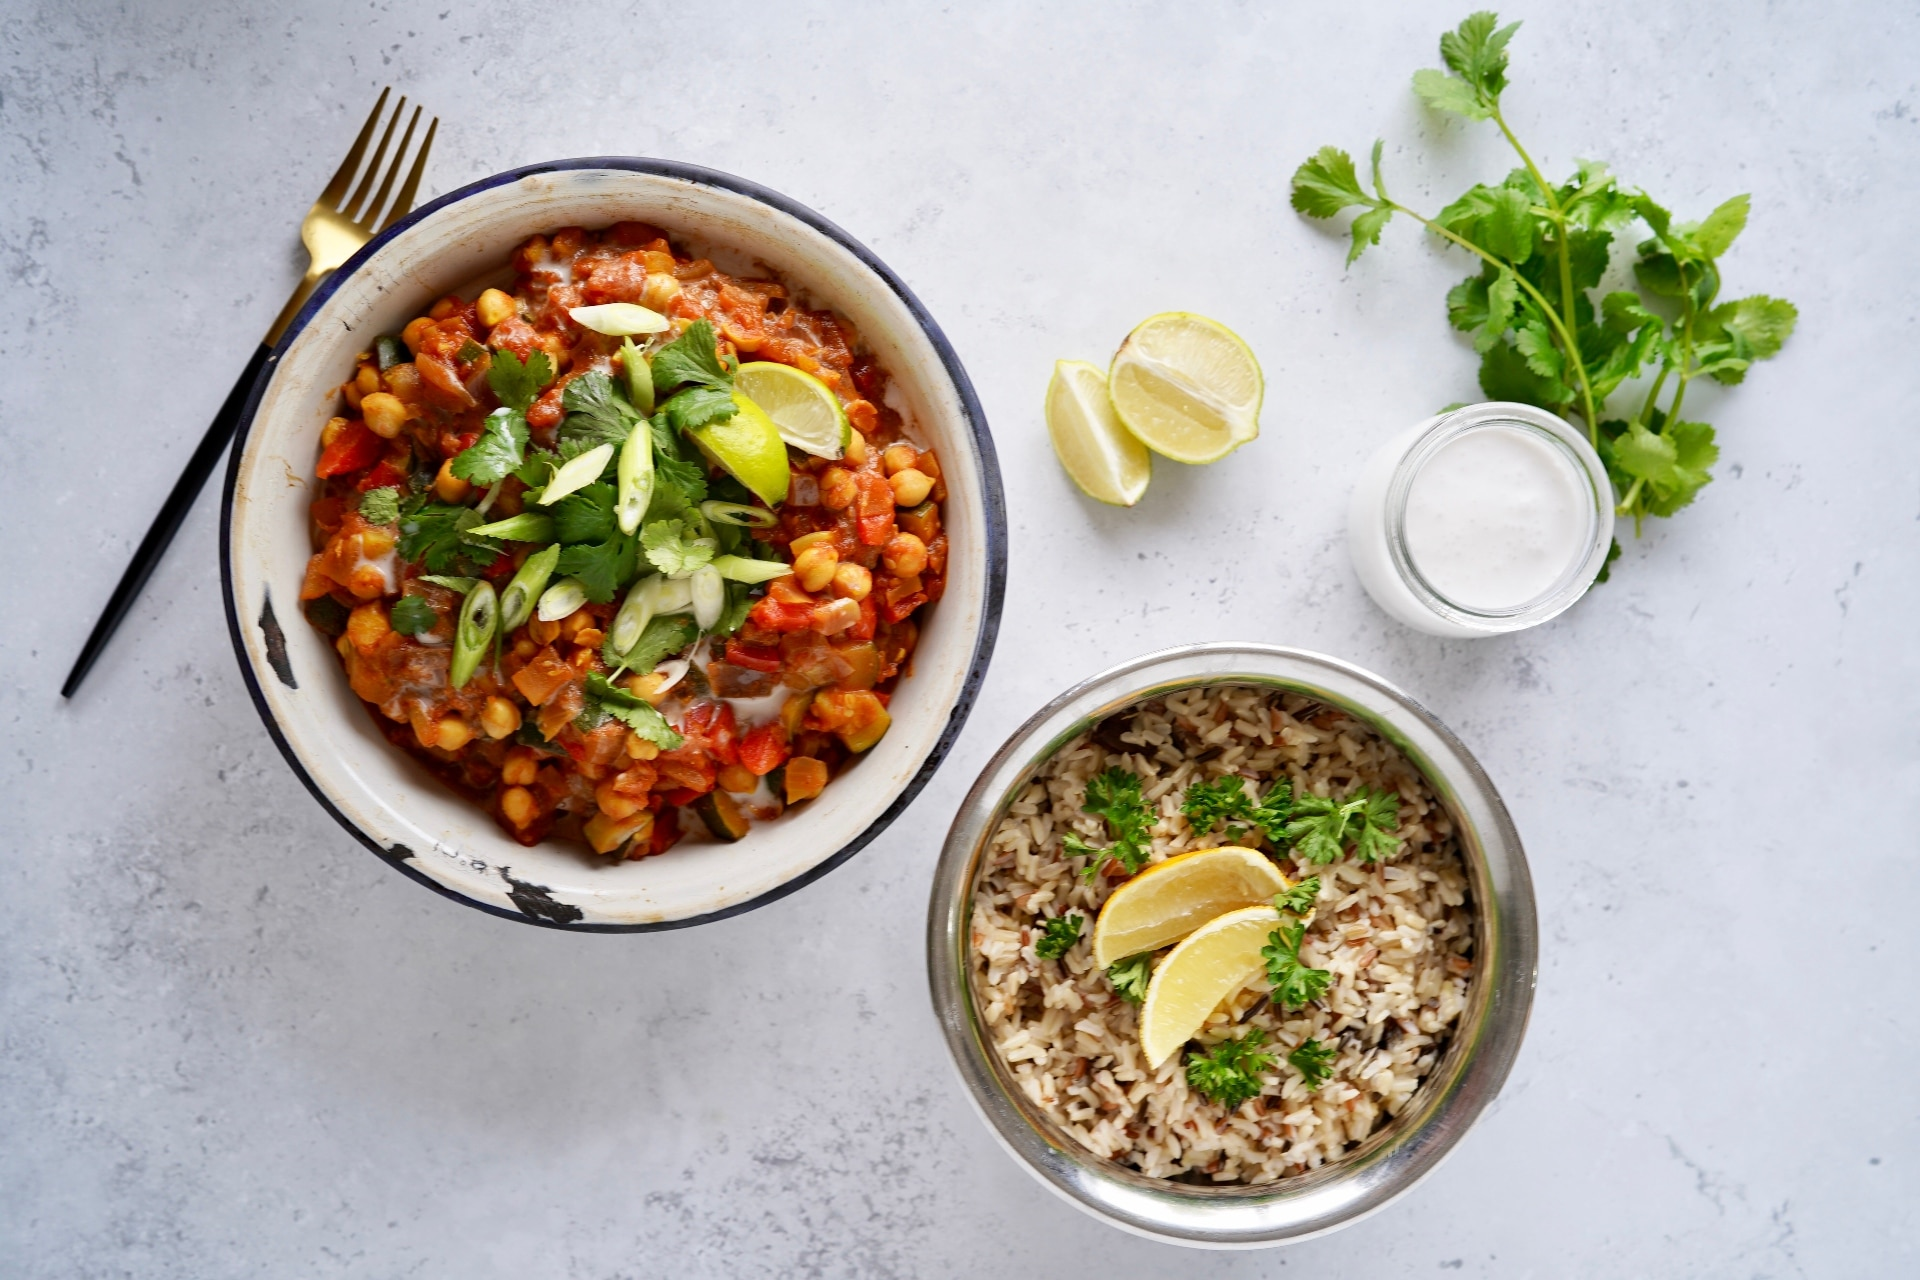 the final vegan Indian curry recipe topped with limes, coriander, and spring onion in a metal dish next to a bowl of wild rice topped with sprigs of fresh parsley and two lime wedges. A glass pot of coconut milk is next to the rice with some fresh sprigs of coriander alongside